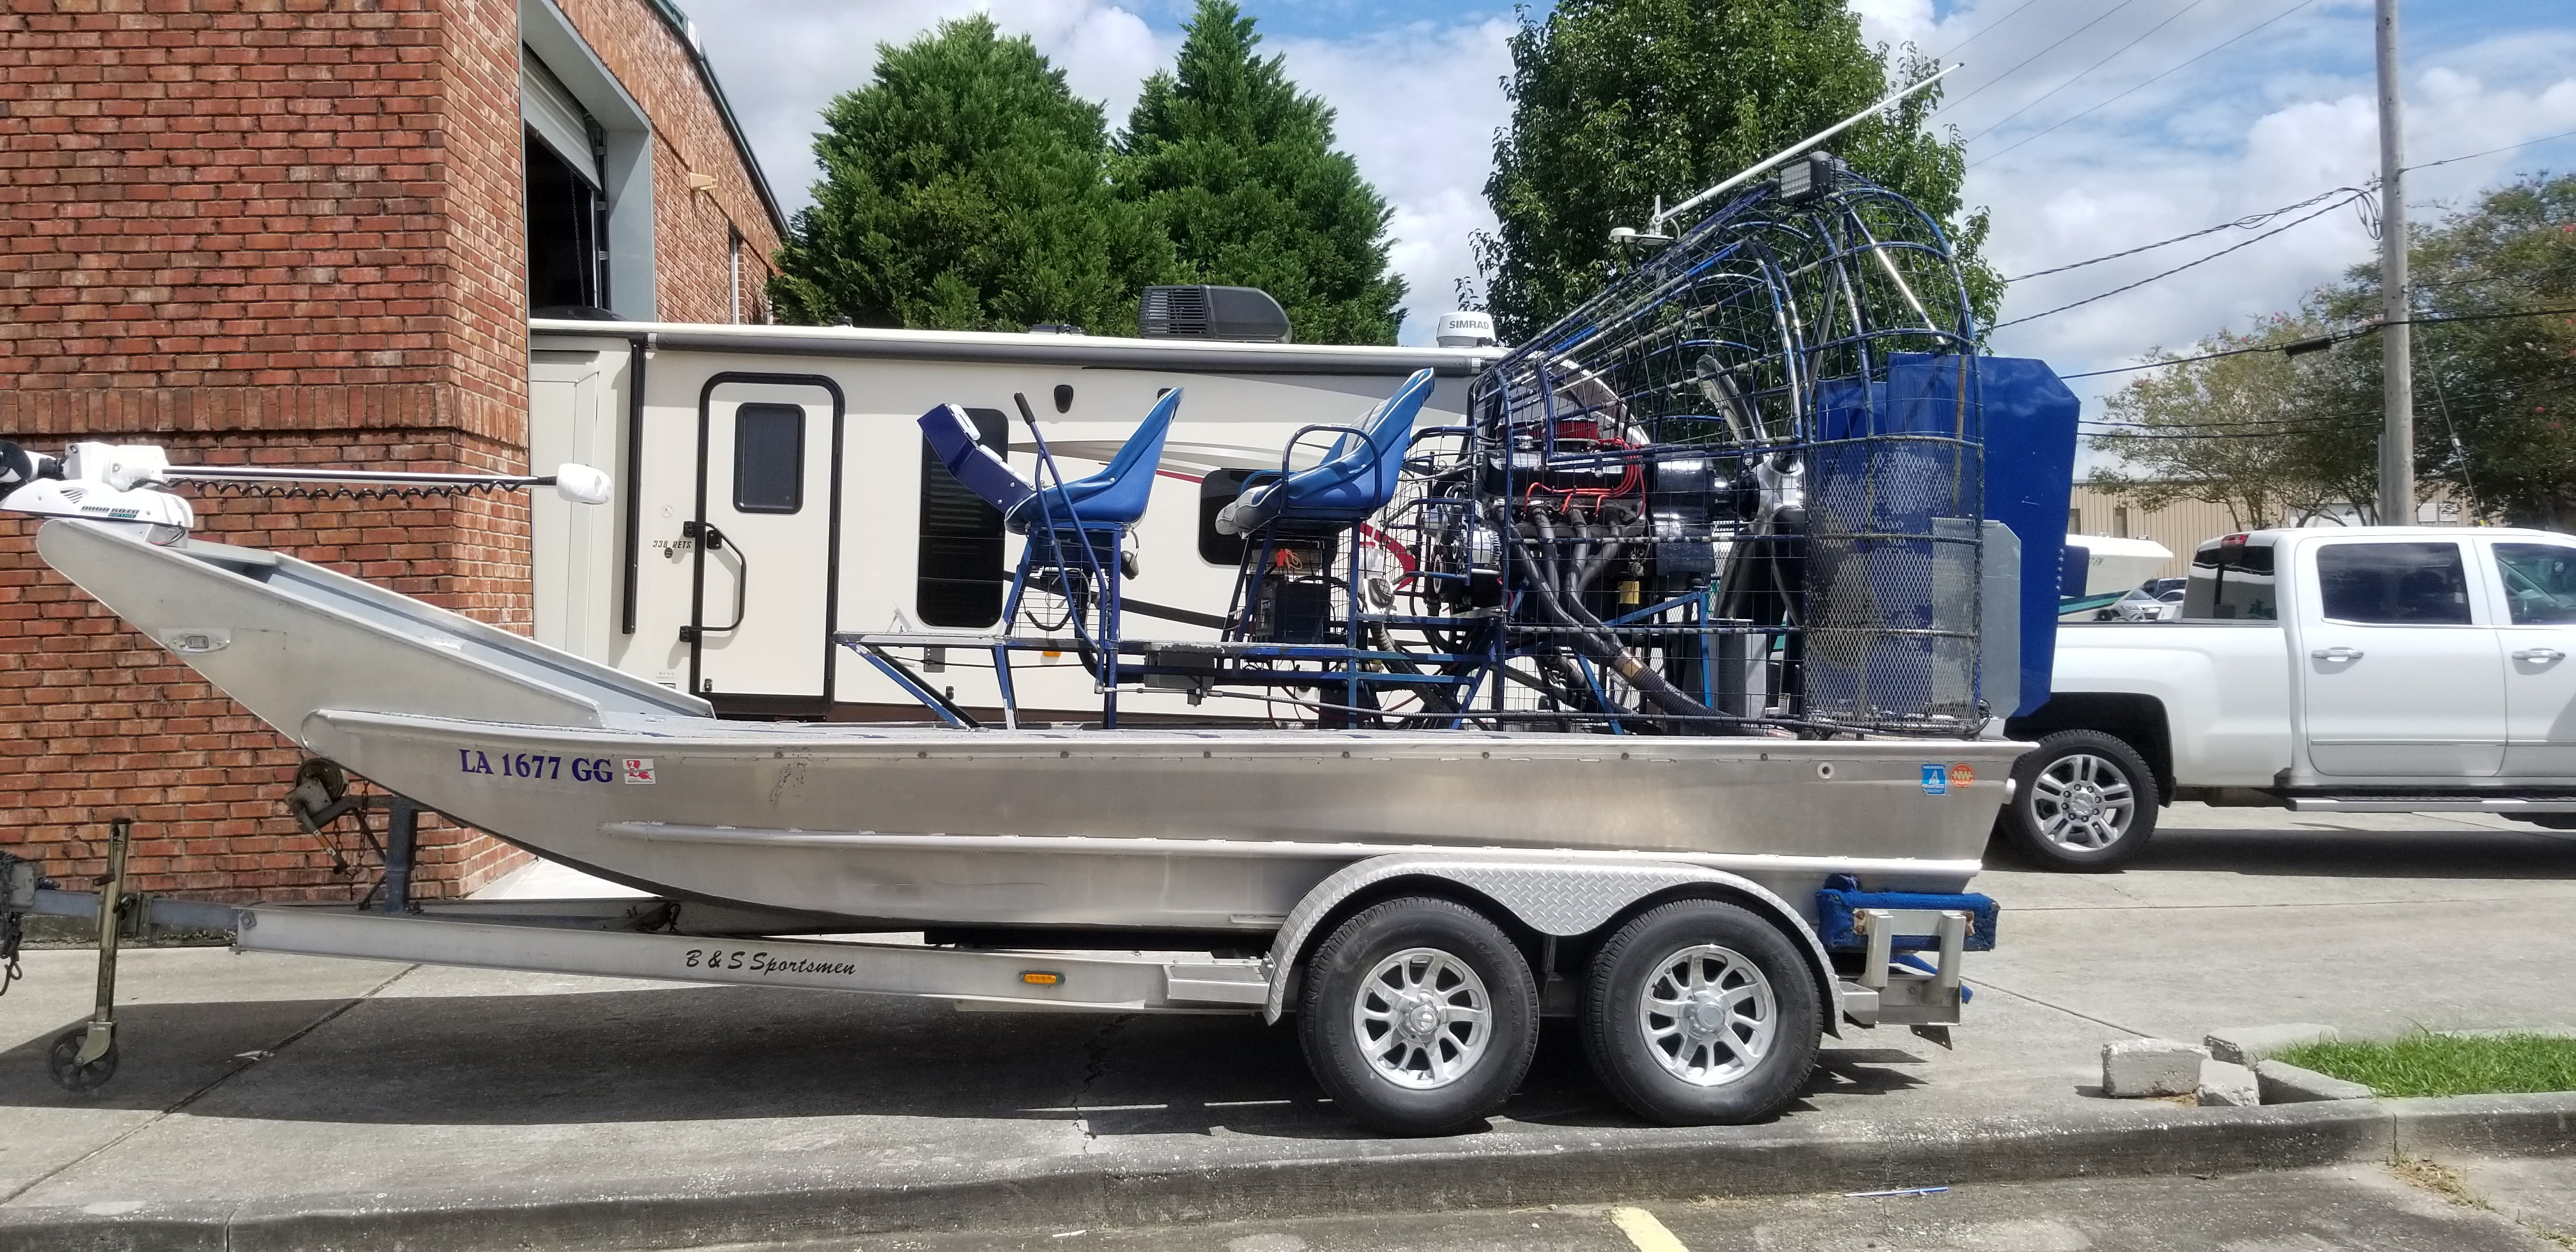 Airboat for sale - Boat Trader